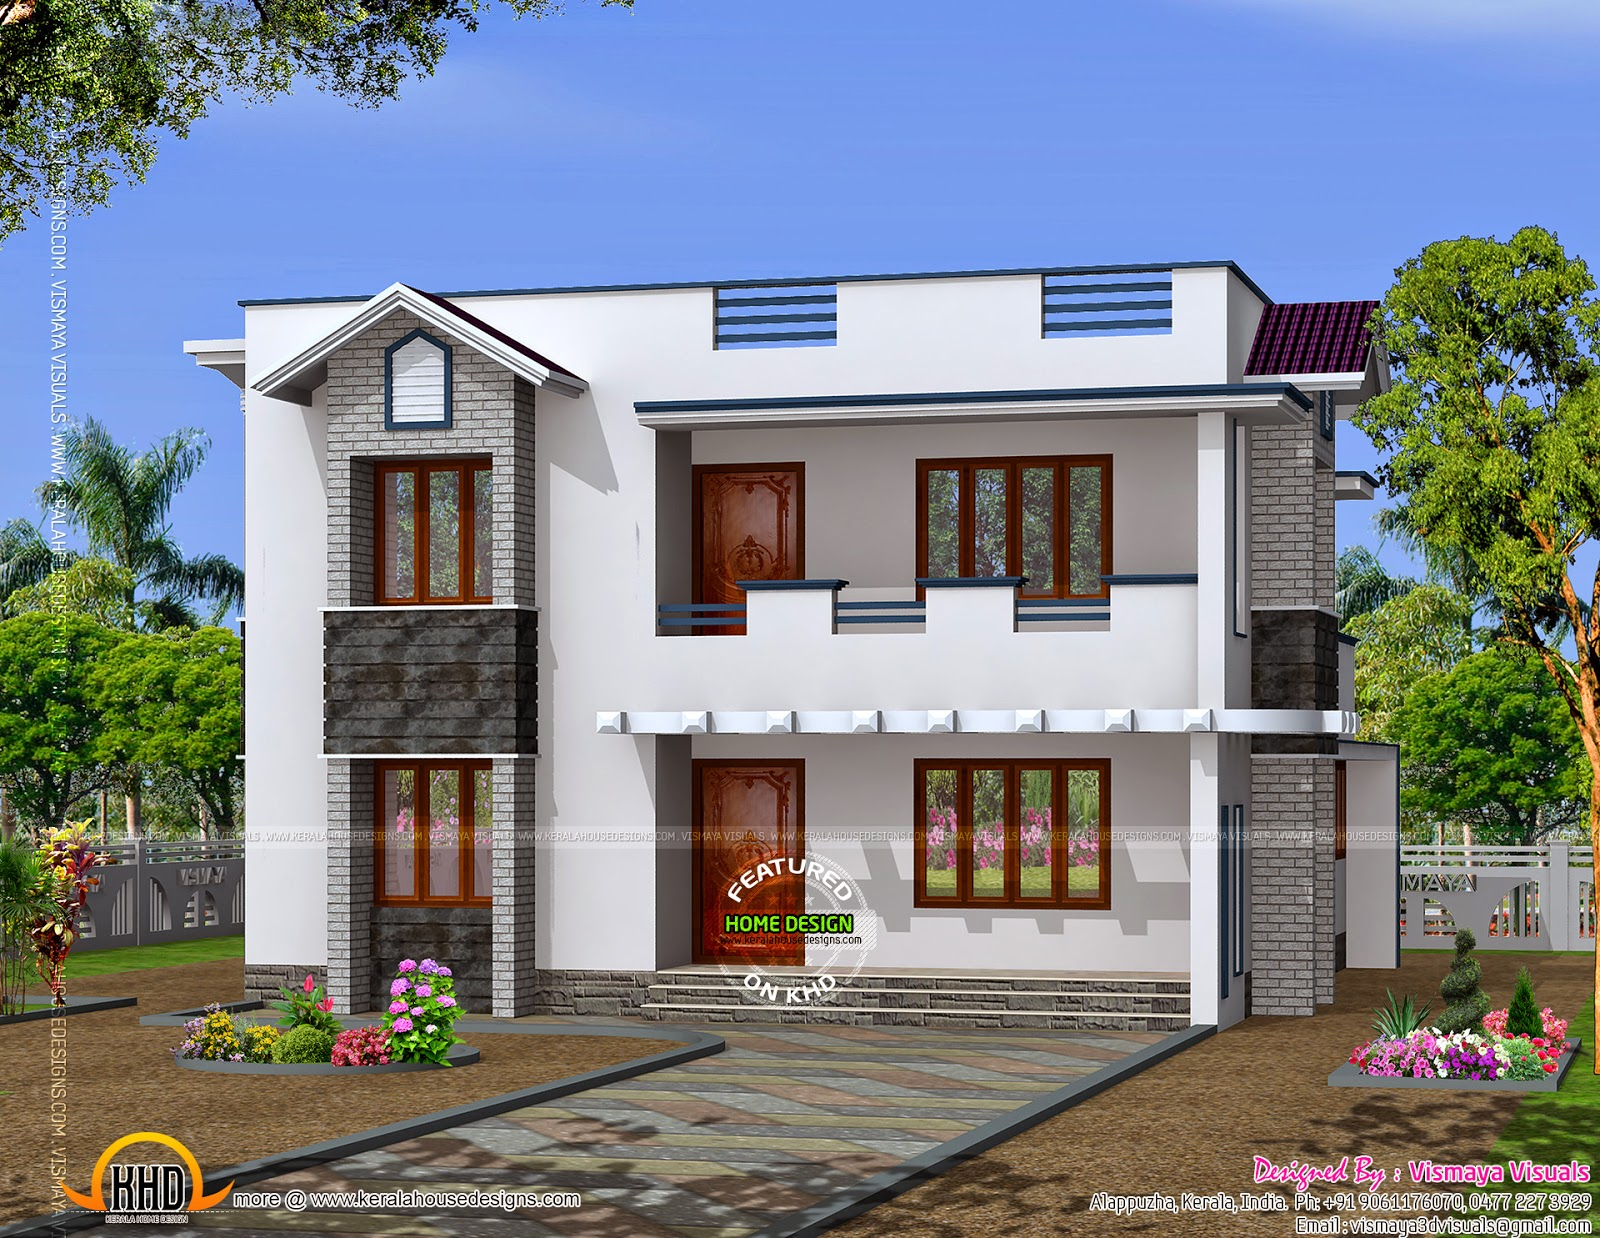 Simple design home kerala home design and floor plans for Simple home plans and designs